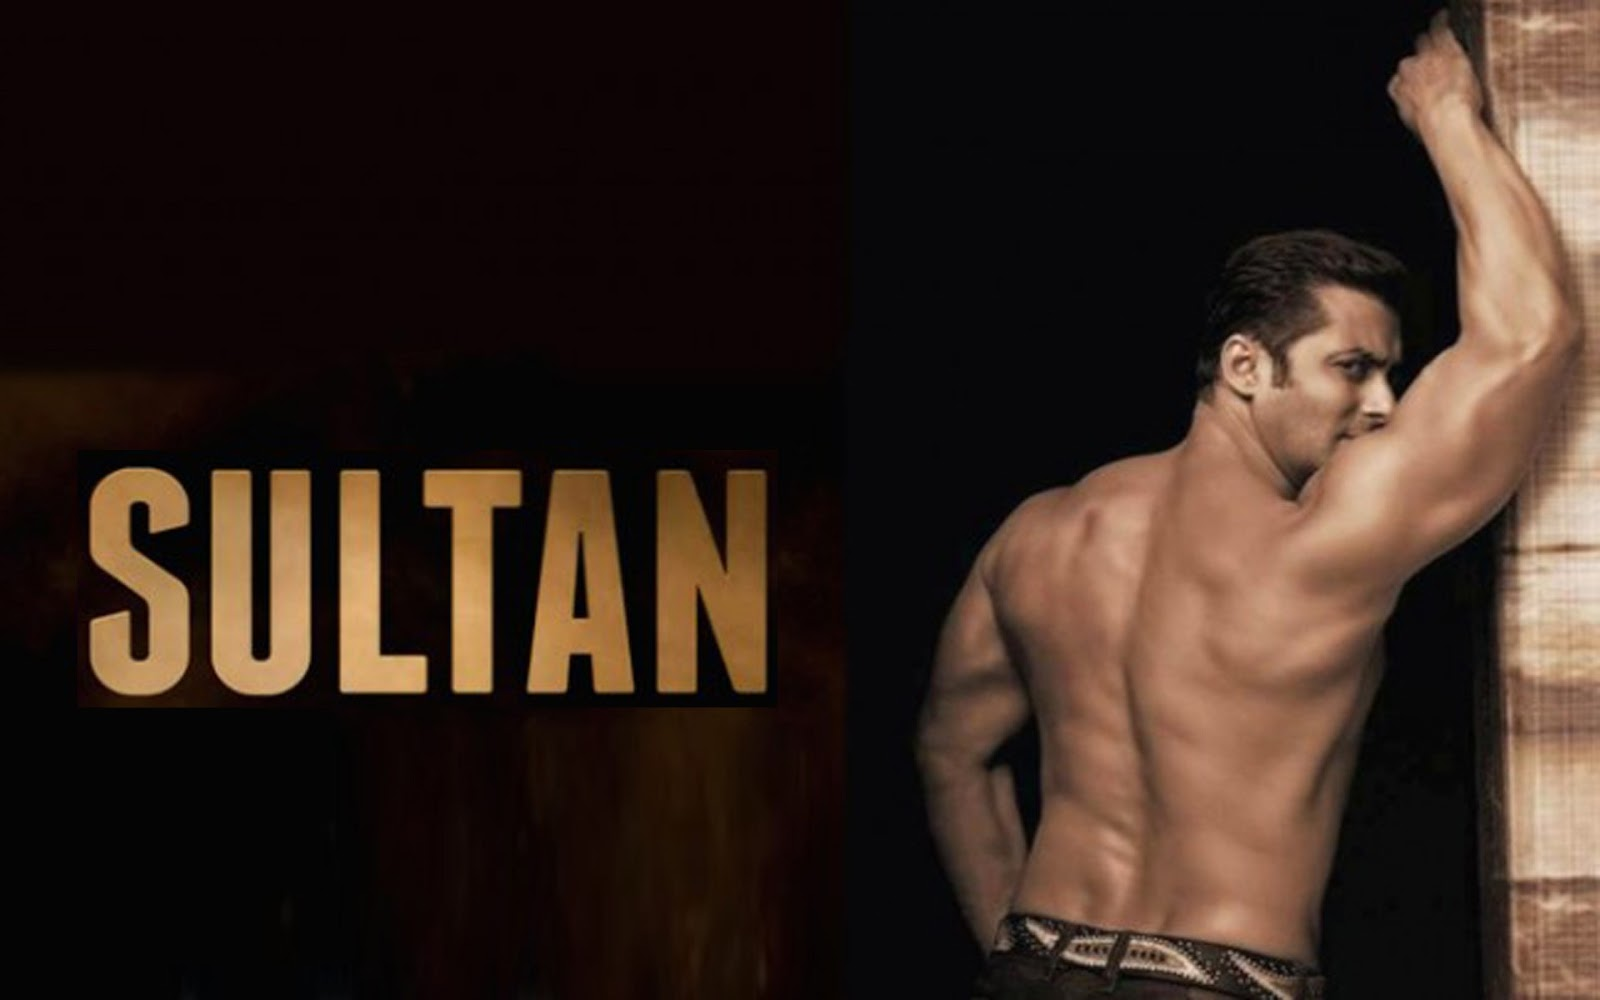 Sultan Movie Amazing Hd Wallpaper Photos Latestwallpaper99